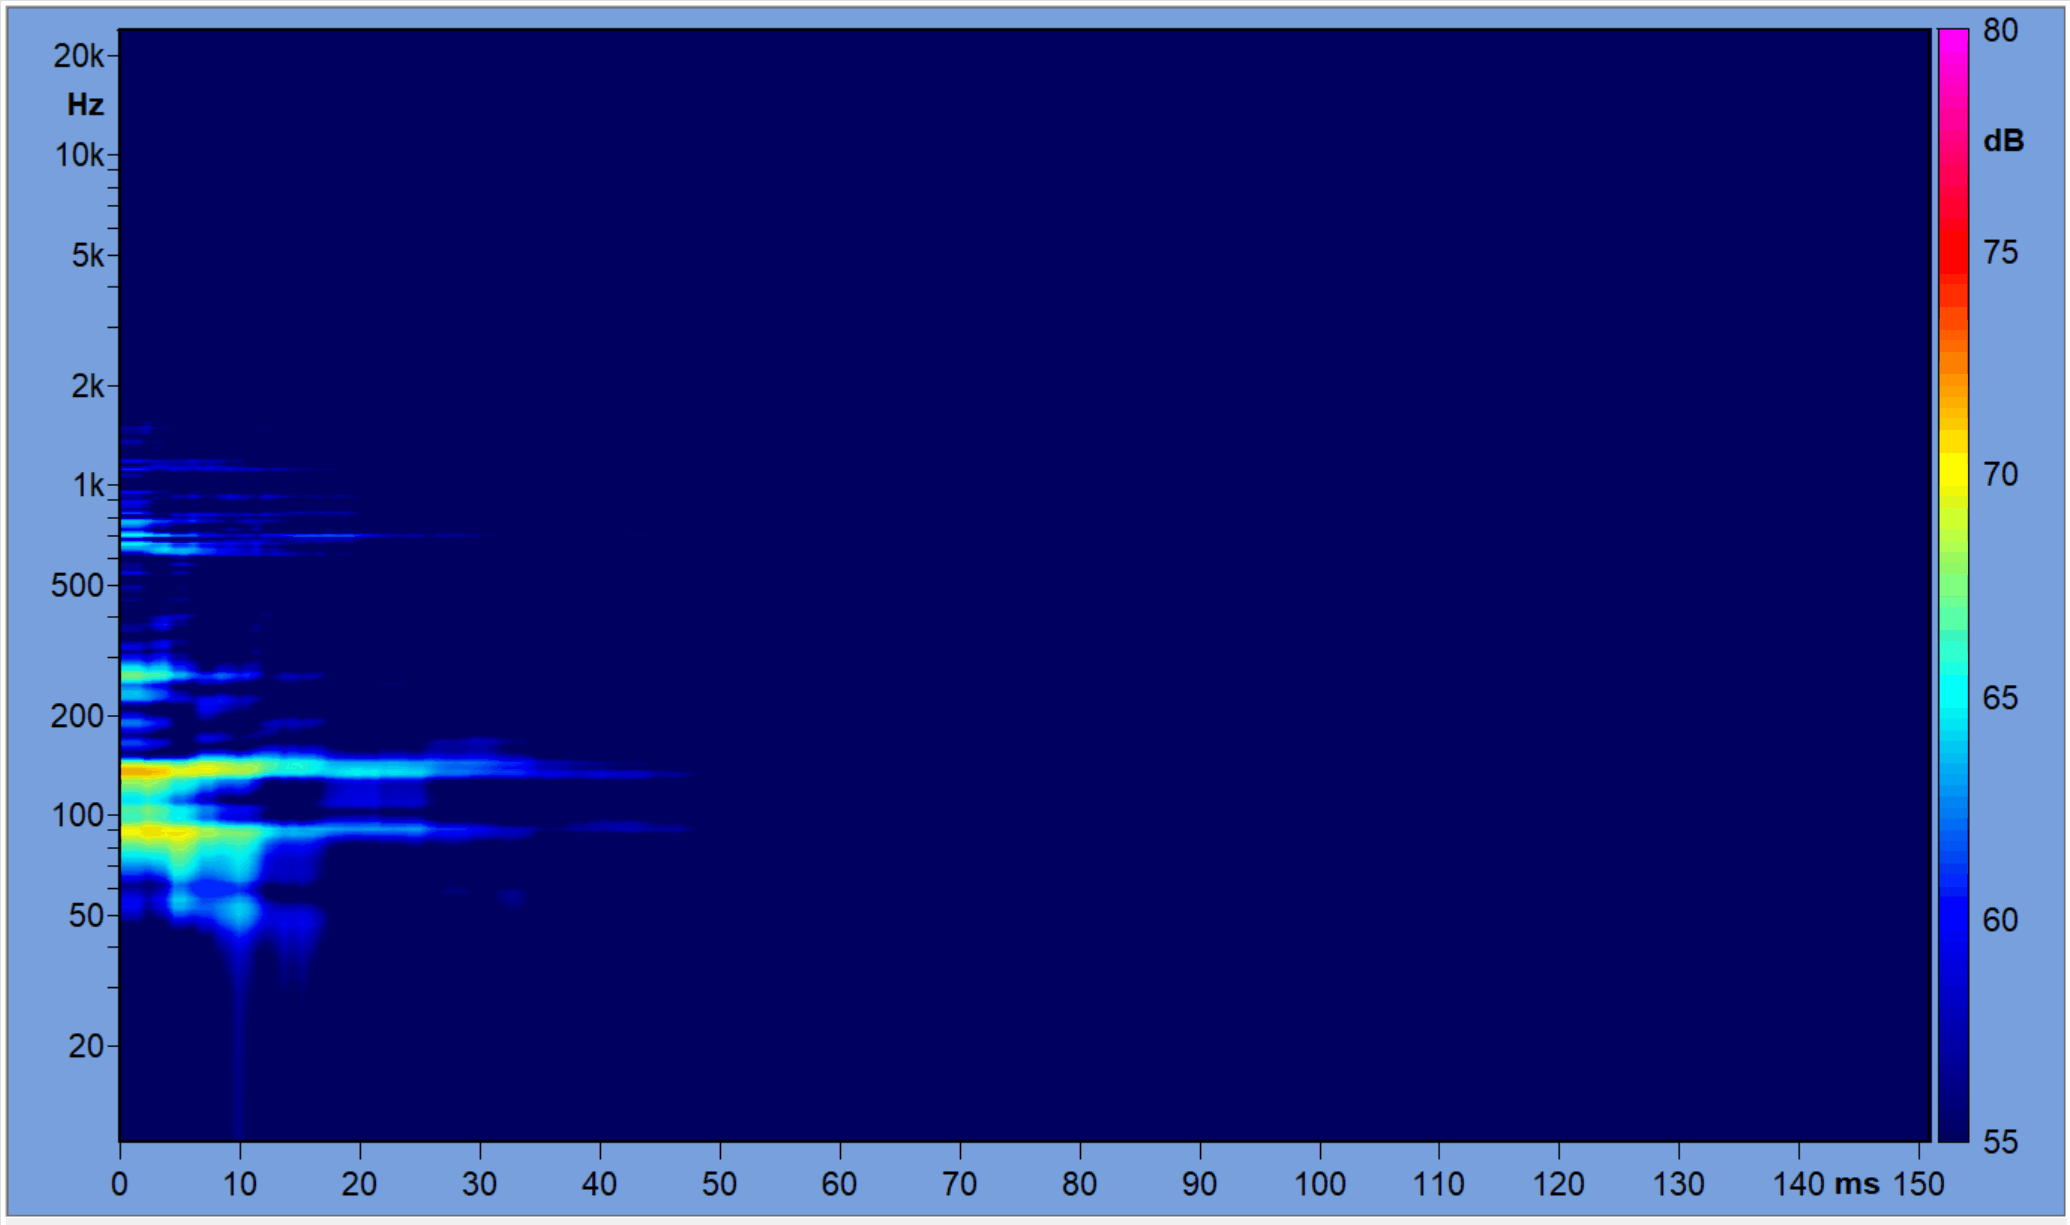 Figure 7 - Frequency/Time plot of the RIR after placement of the panels.